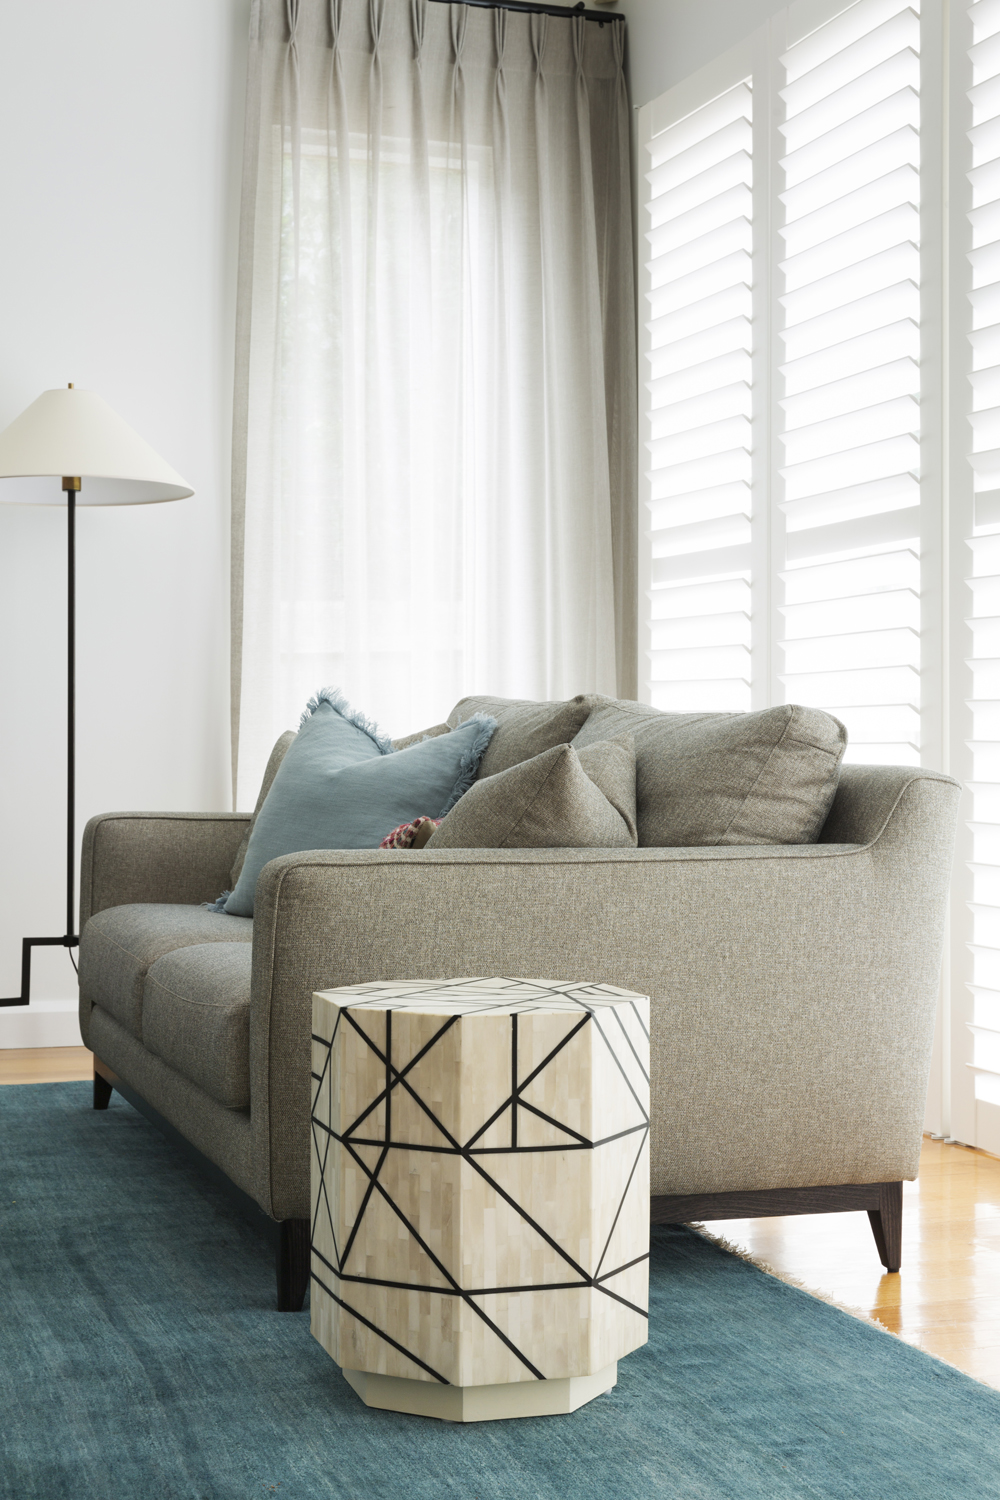 Curtains and shutters by Melbourne interior designer Meredith Lee